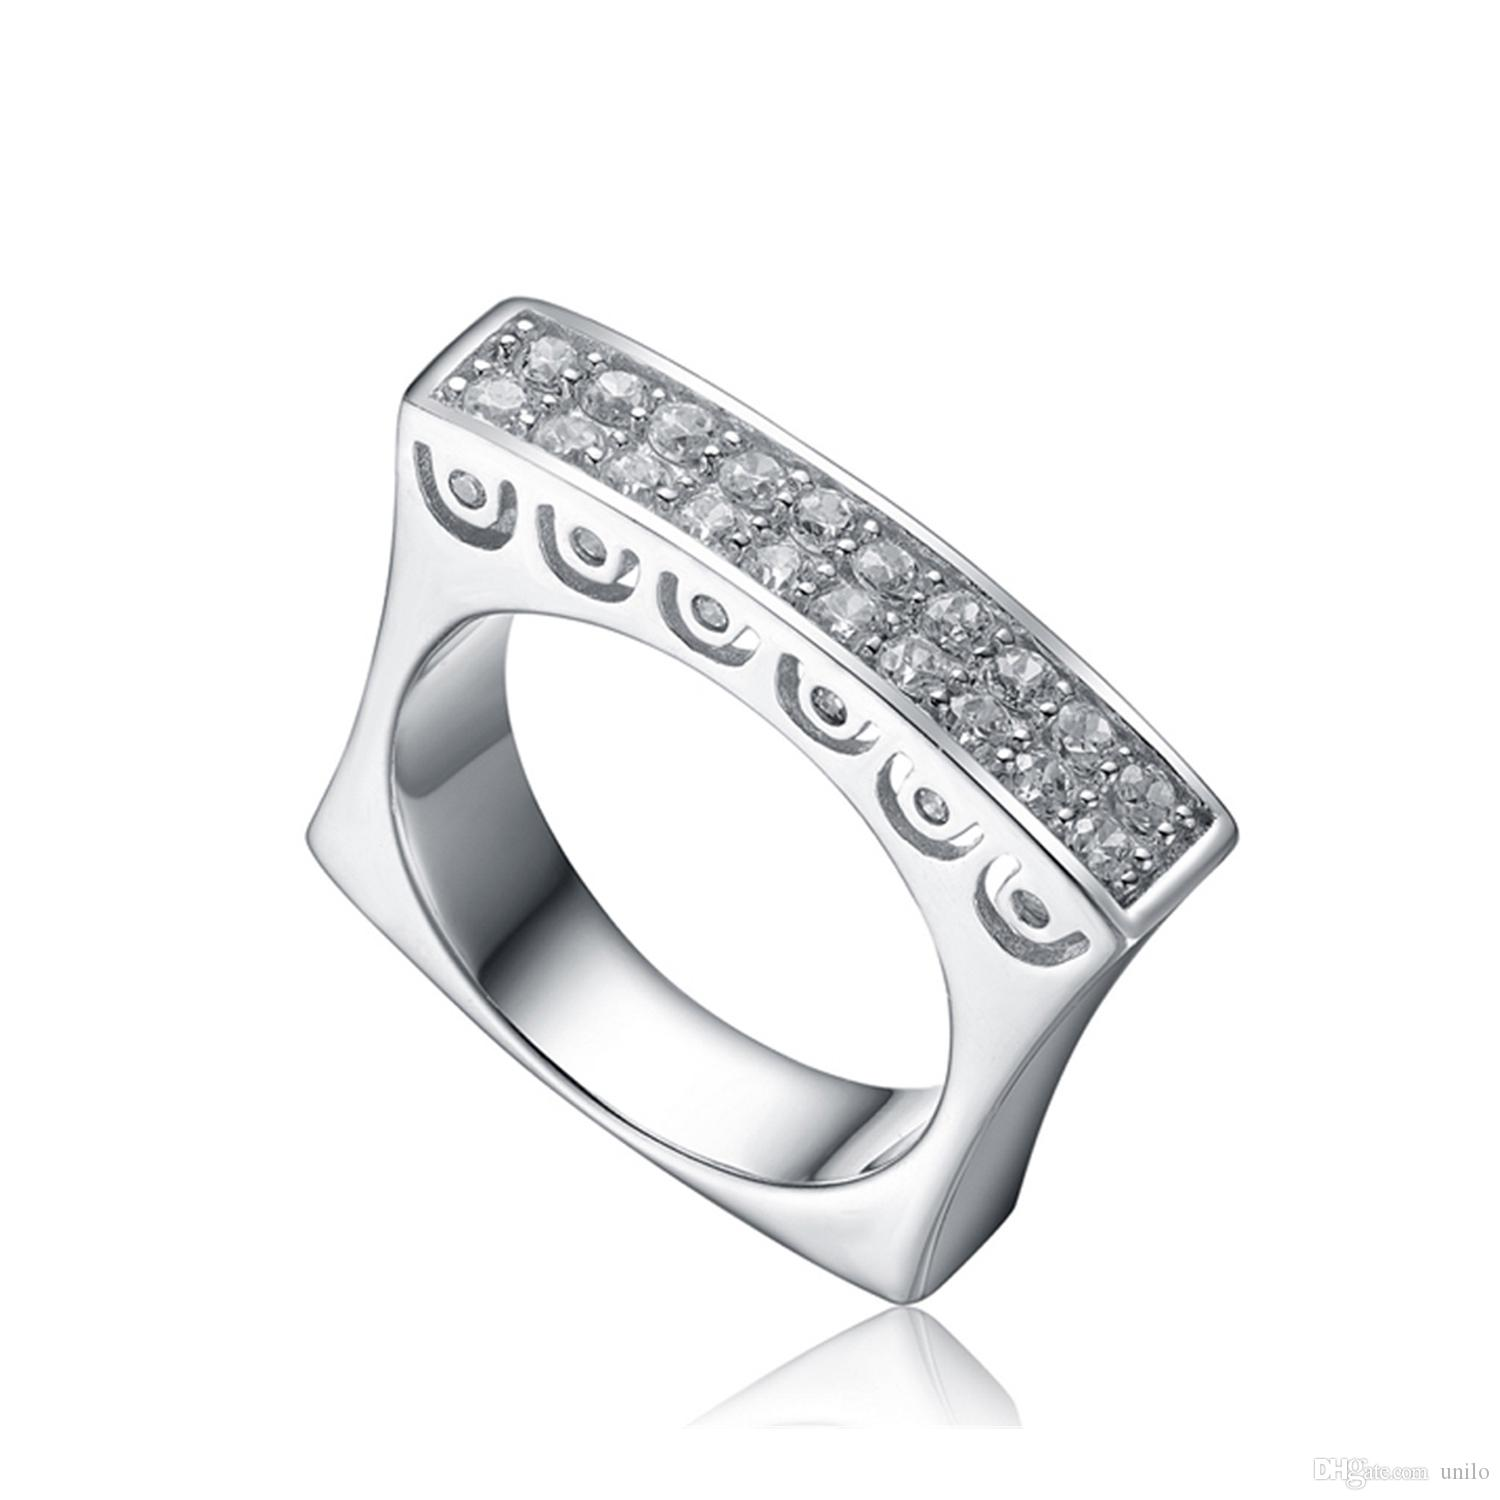 rings en ring diamond single halo with birks engagement angle square round wedding